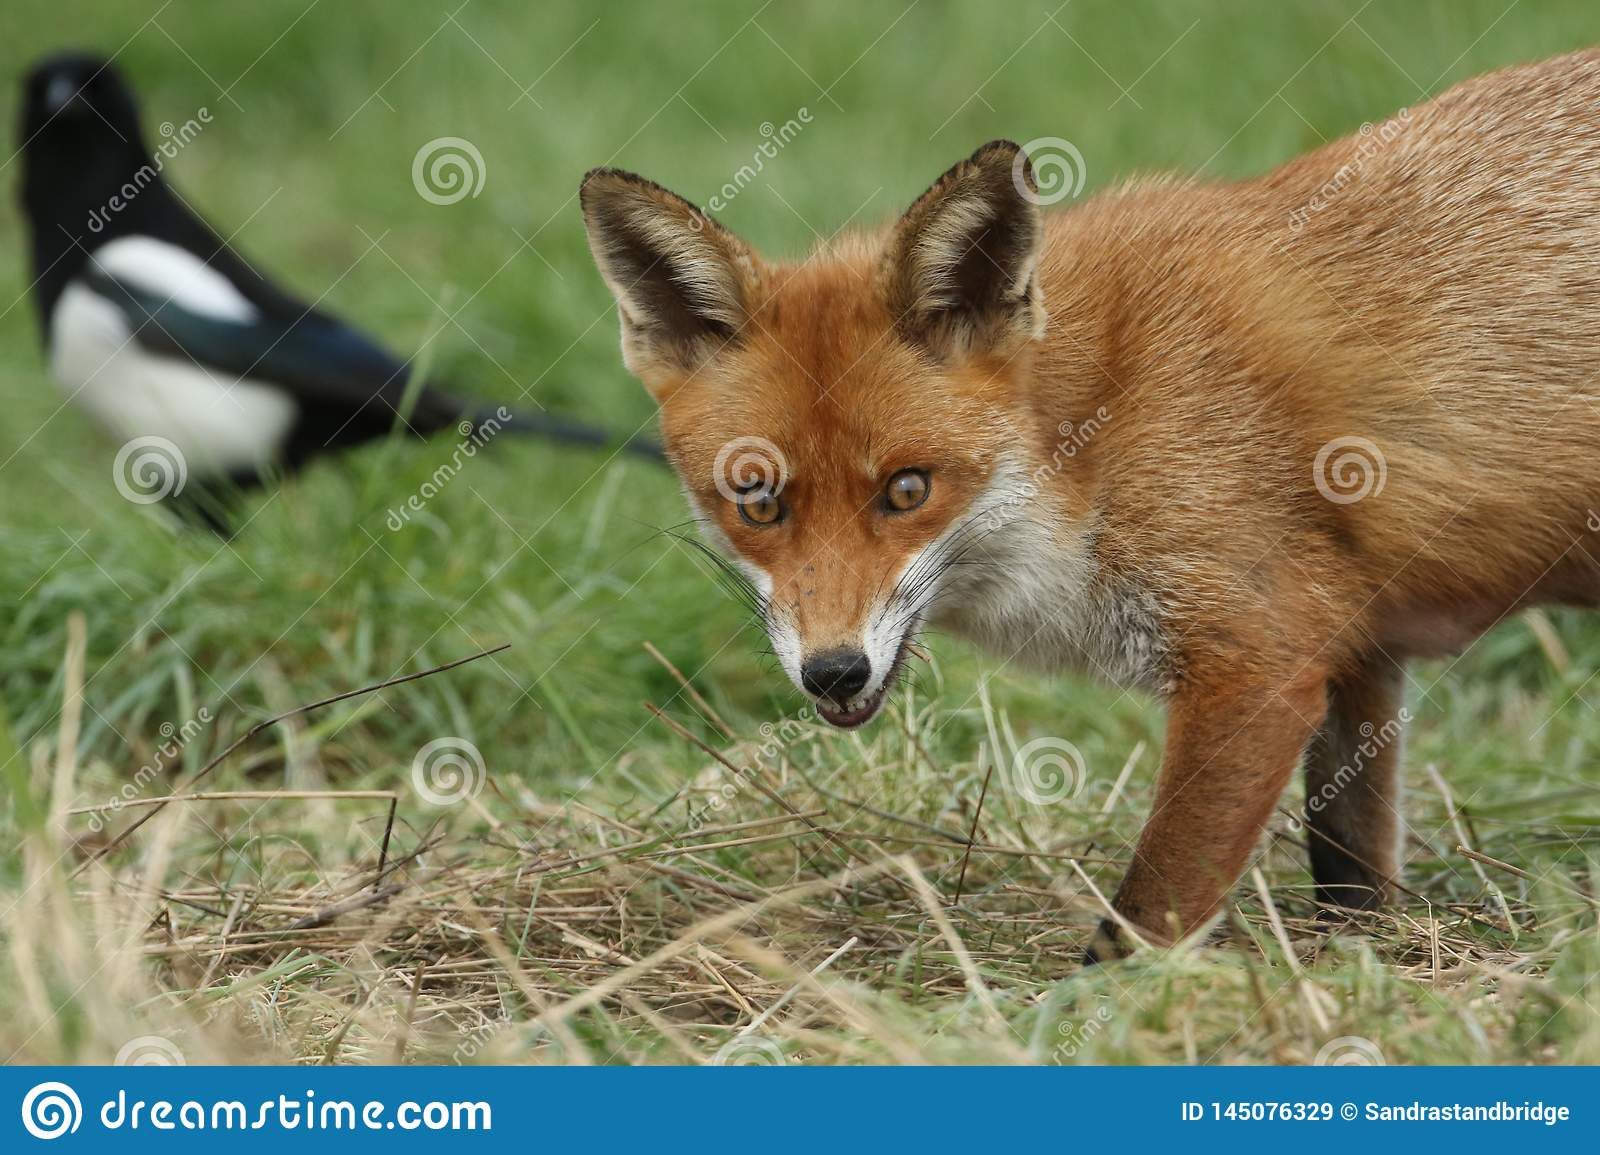 A magnificent wild Red Fox Vulpes vulpes hunting for food to eat in the long grass.